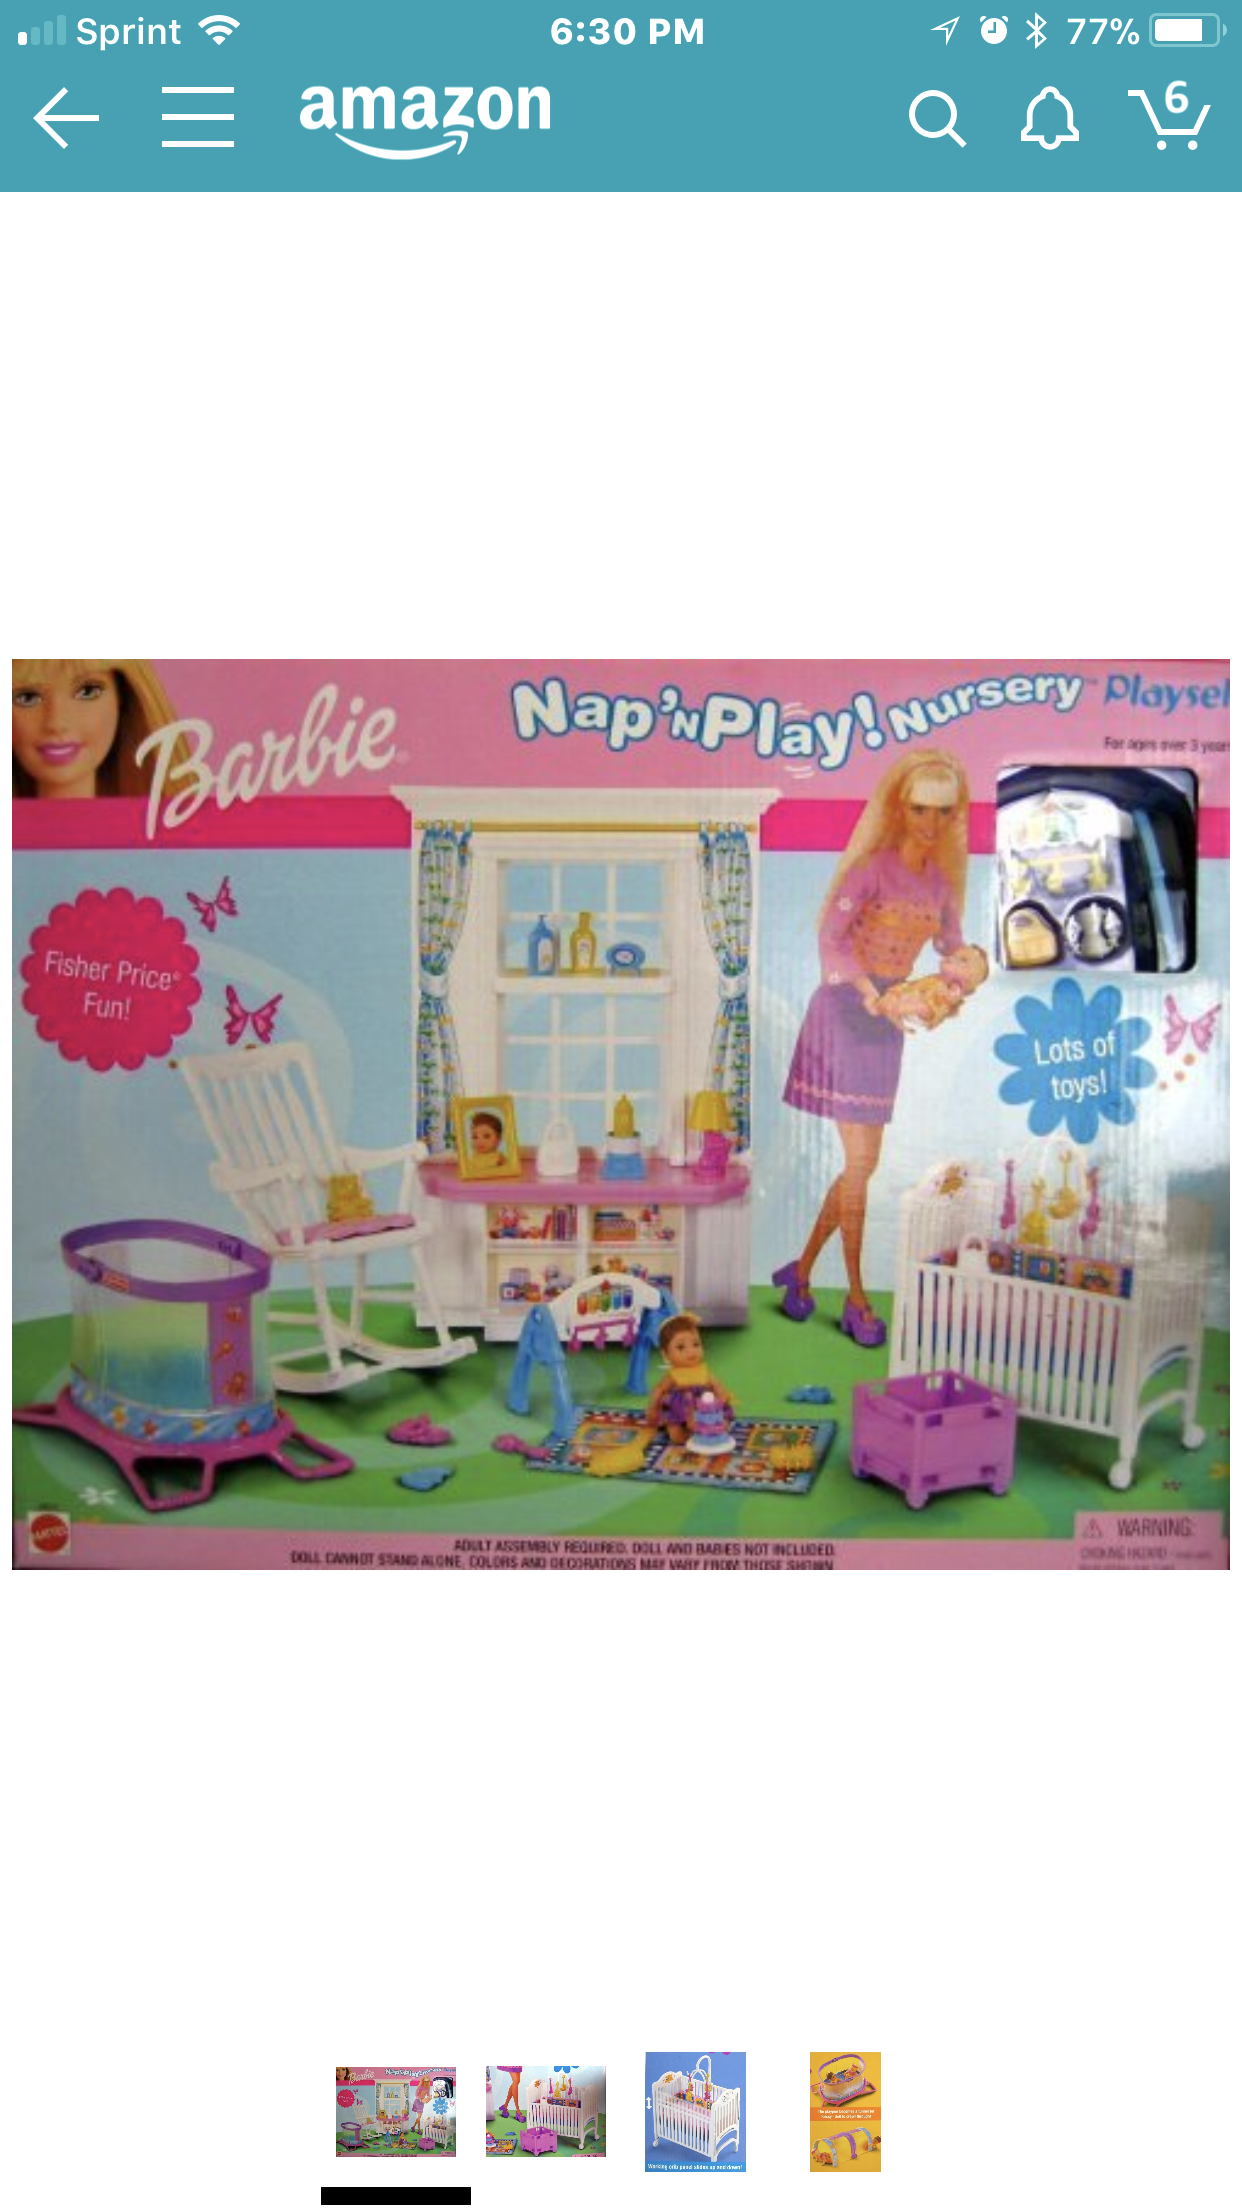 Pin By 𝒜𝓈𝒽𝓁𝑒𝓎 𝐻𝑜𝓉𝒸𝒽𝓀𝒾𝓈𝓈 On Barbie Doll Houses And